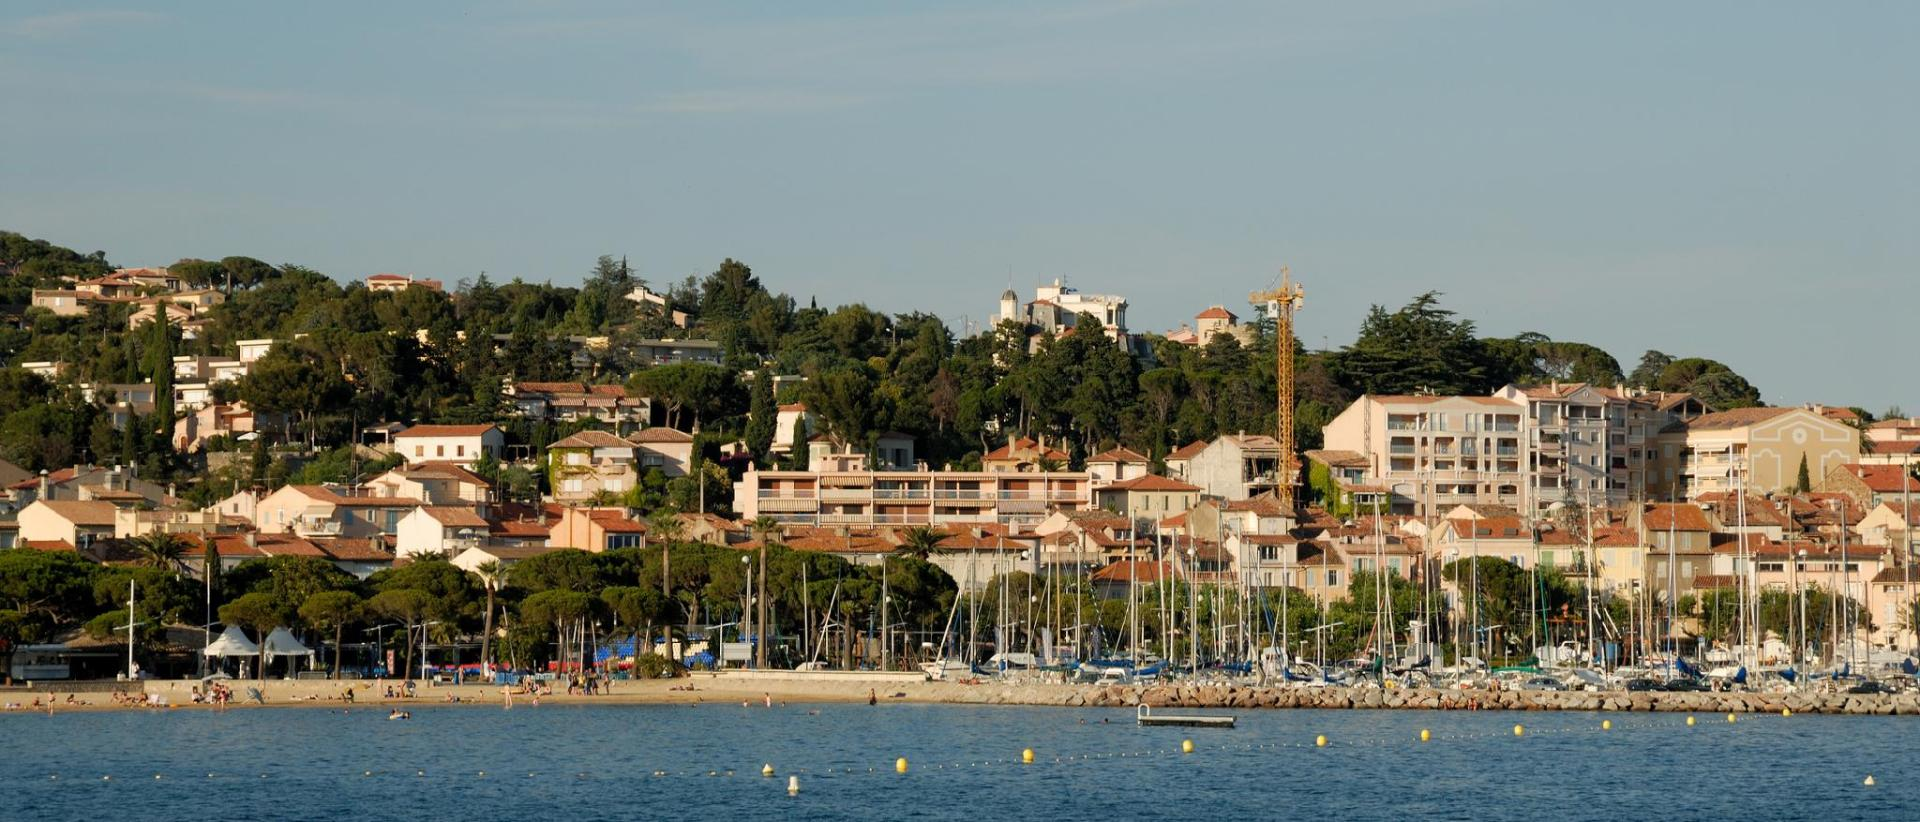 Hotels Near La Cigale Sainte Maxime Best Hotel Rates Near